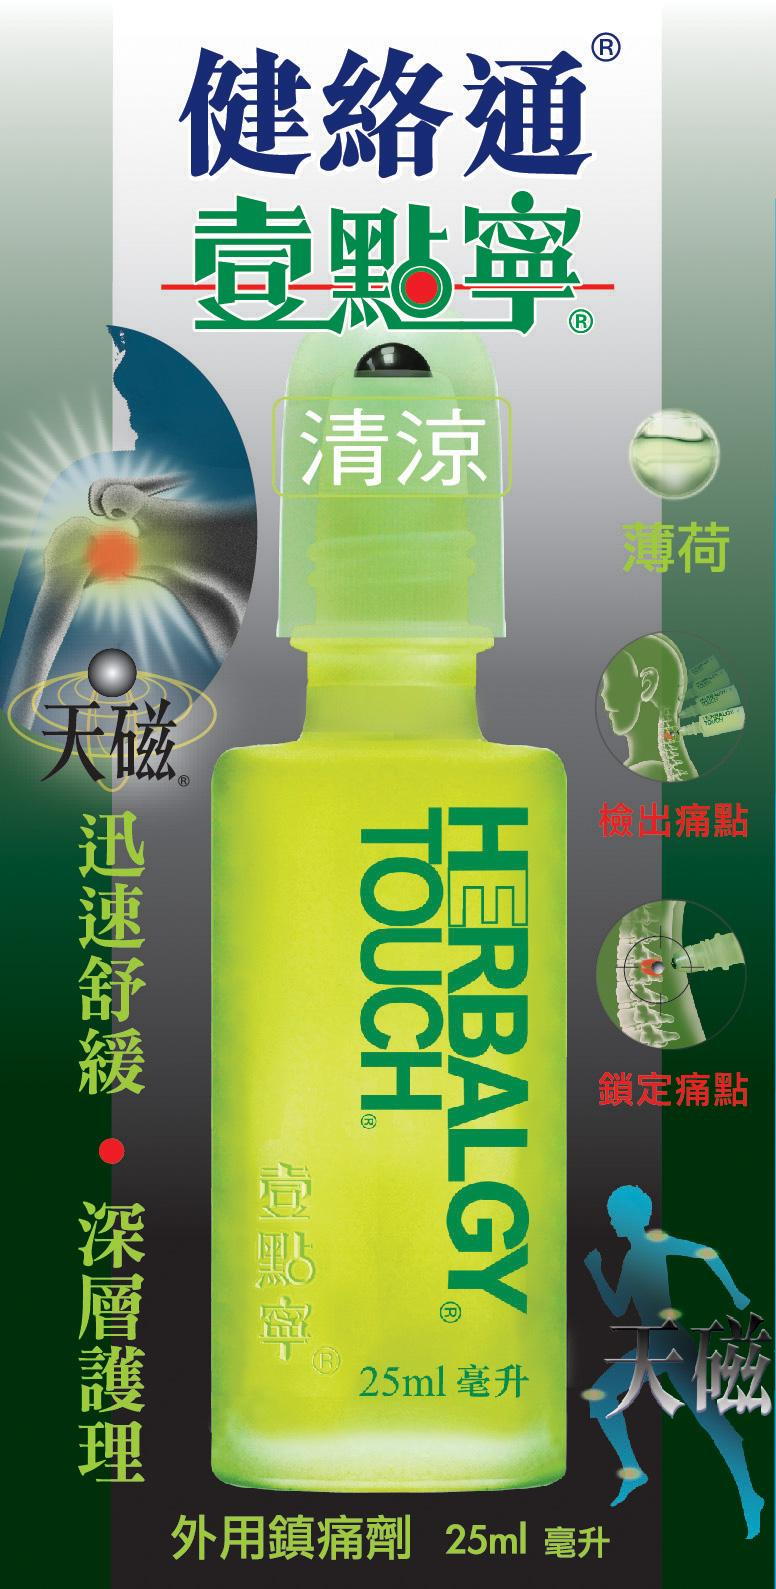 2013-03 HK touch 25ml design Output-01.jpg